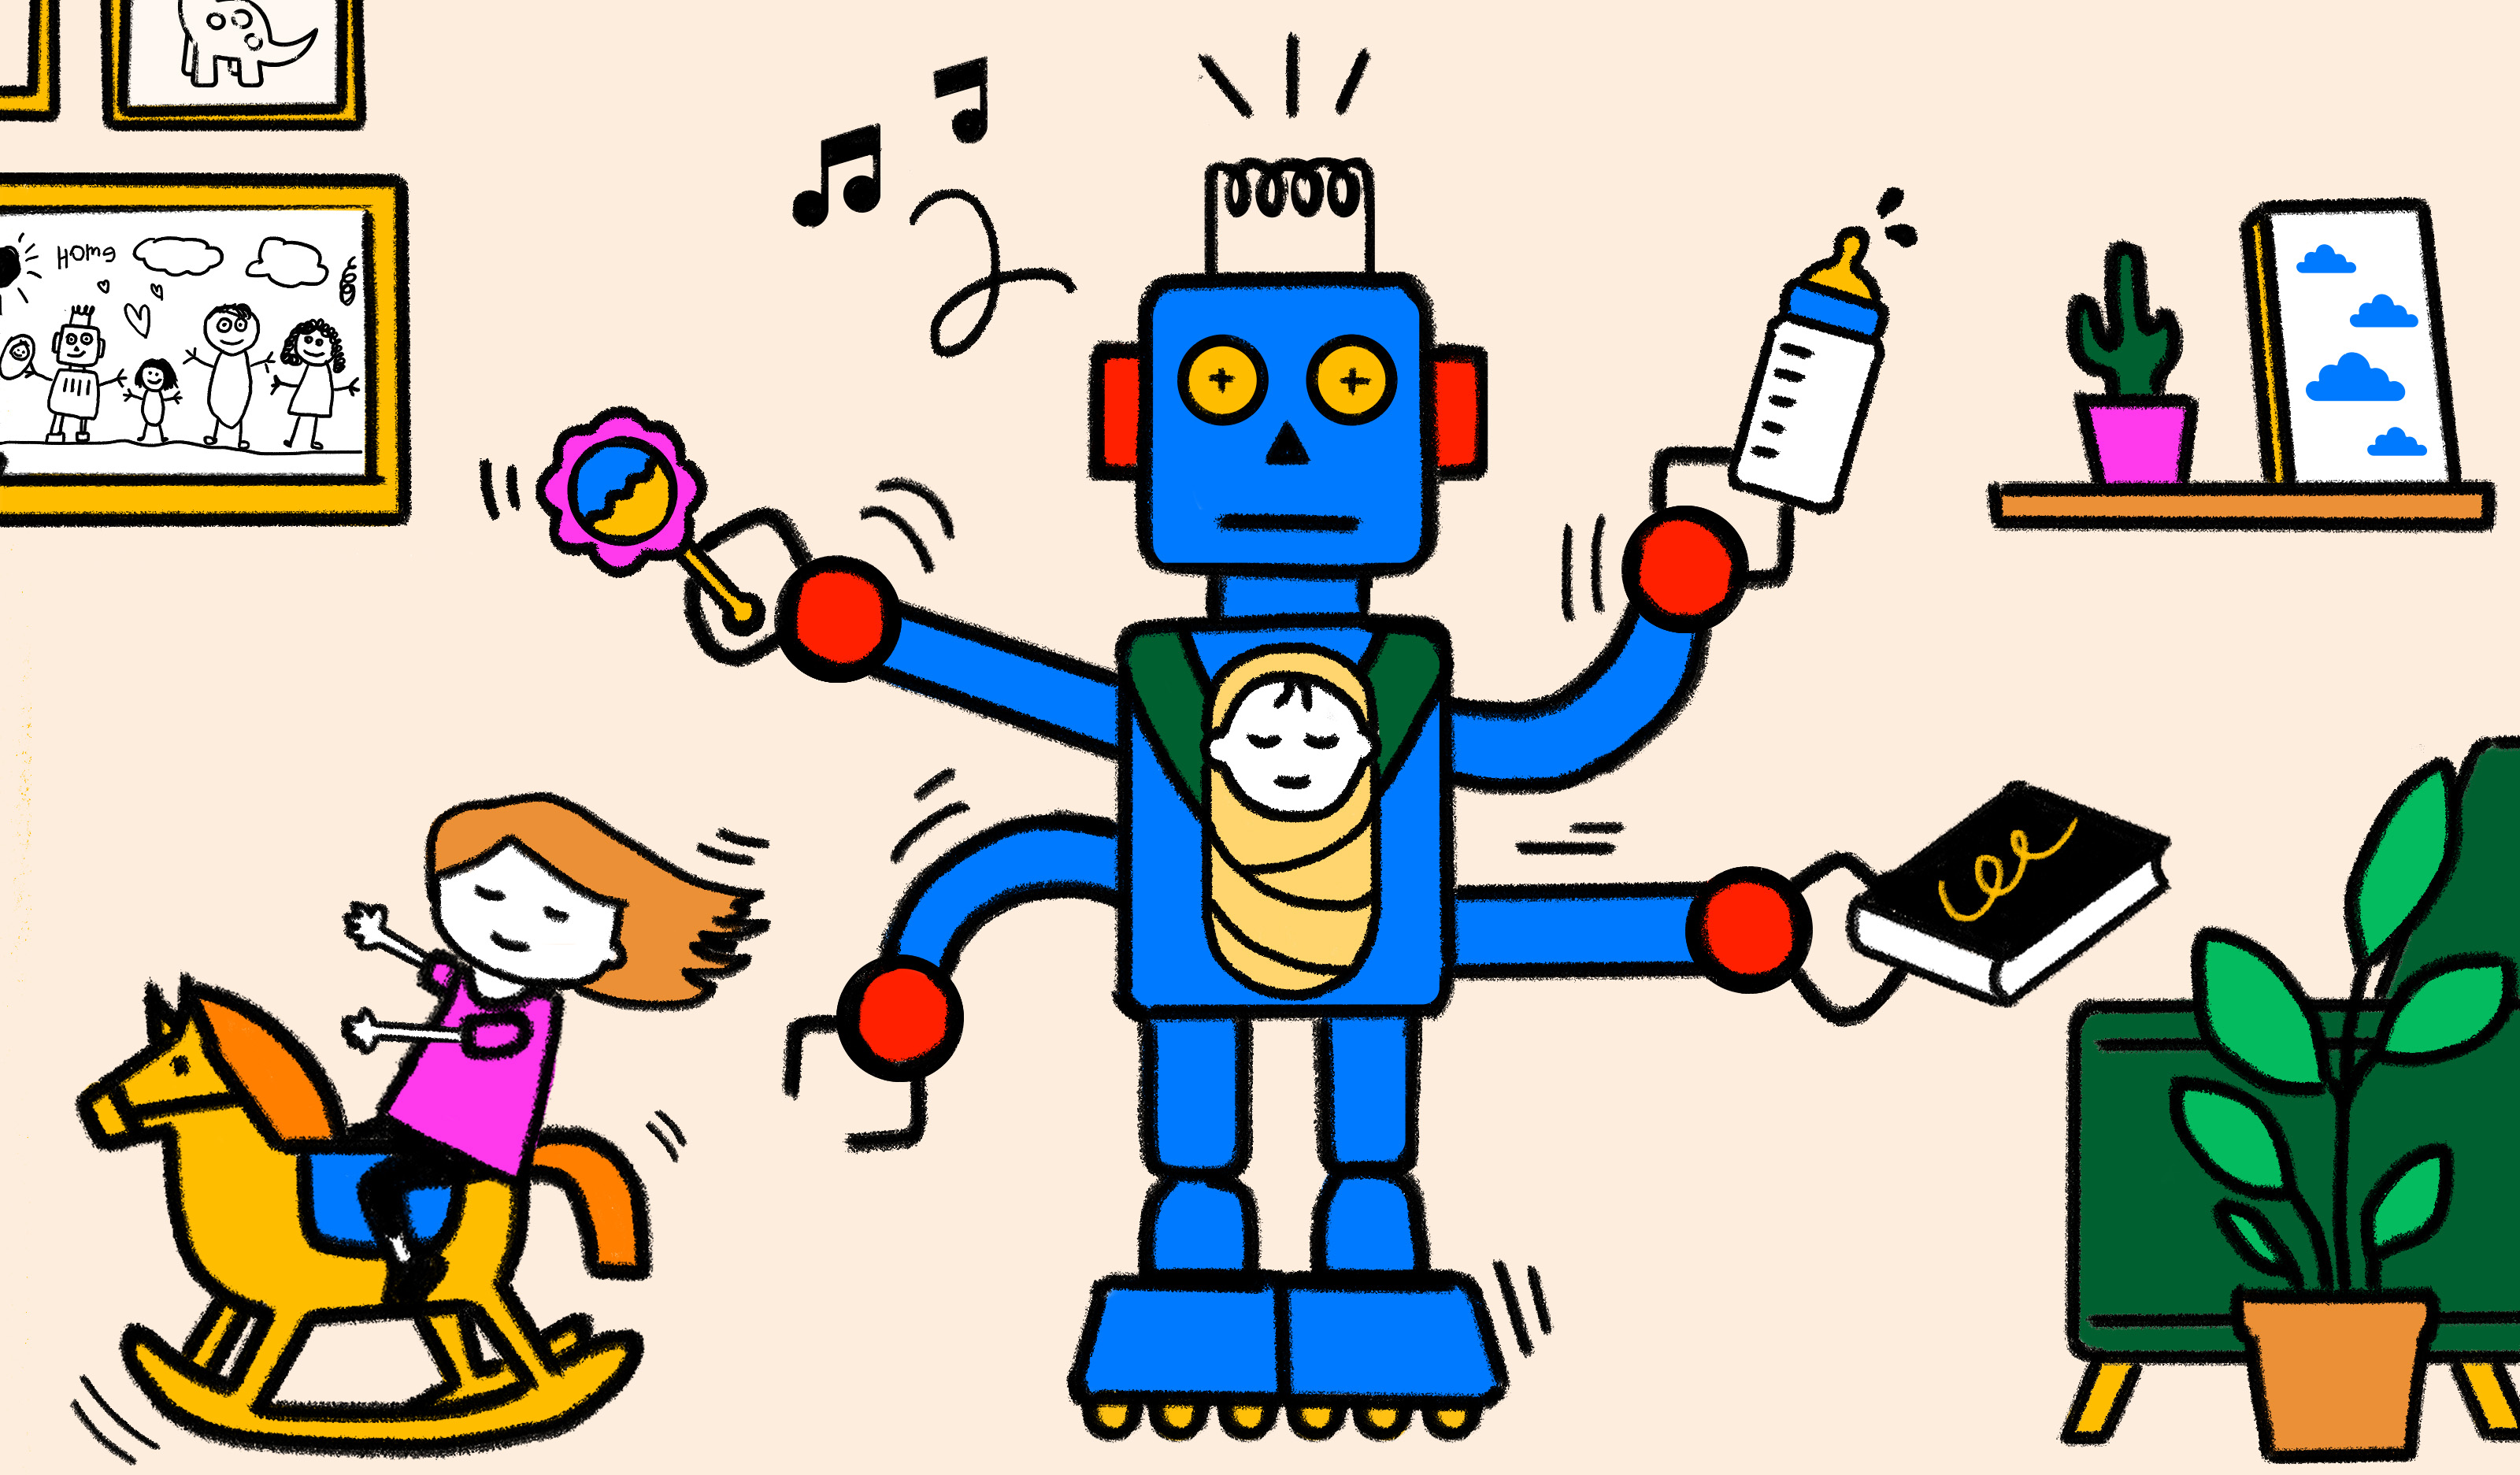 Tech for kids will soon automate away the job of parents